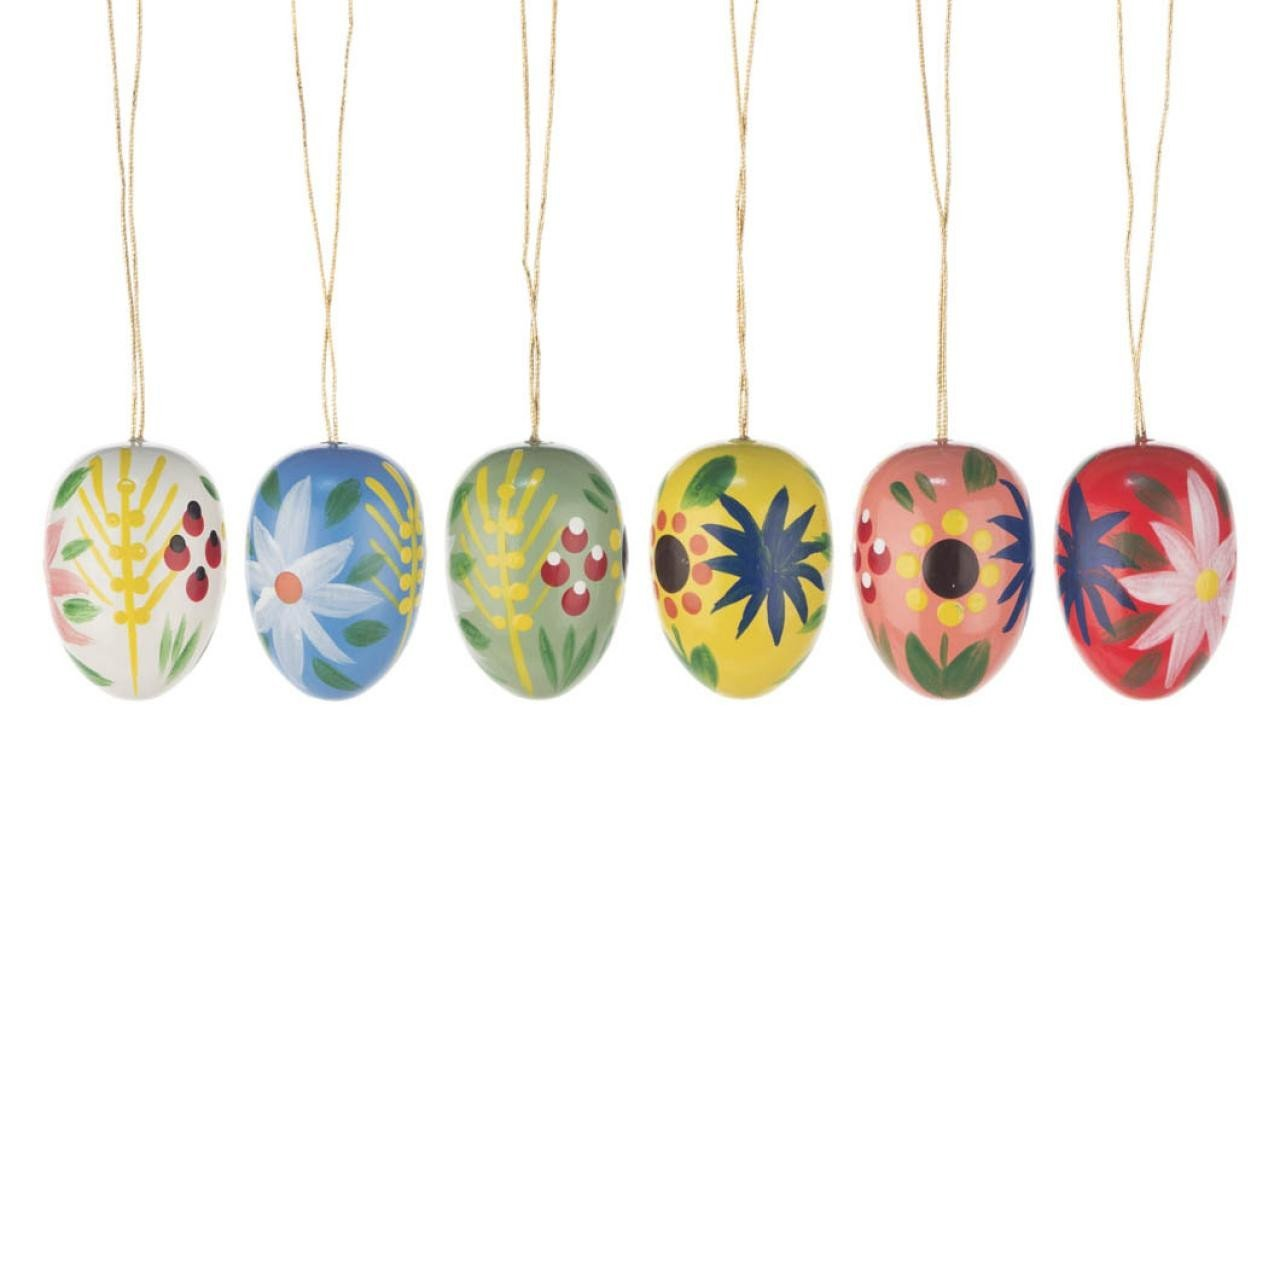 Easter Tree Decoration - Lillies and Sunflowers (Set of 6)